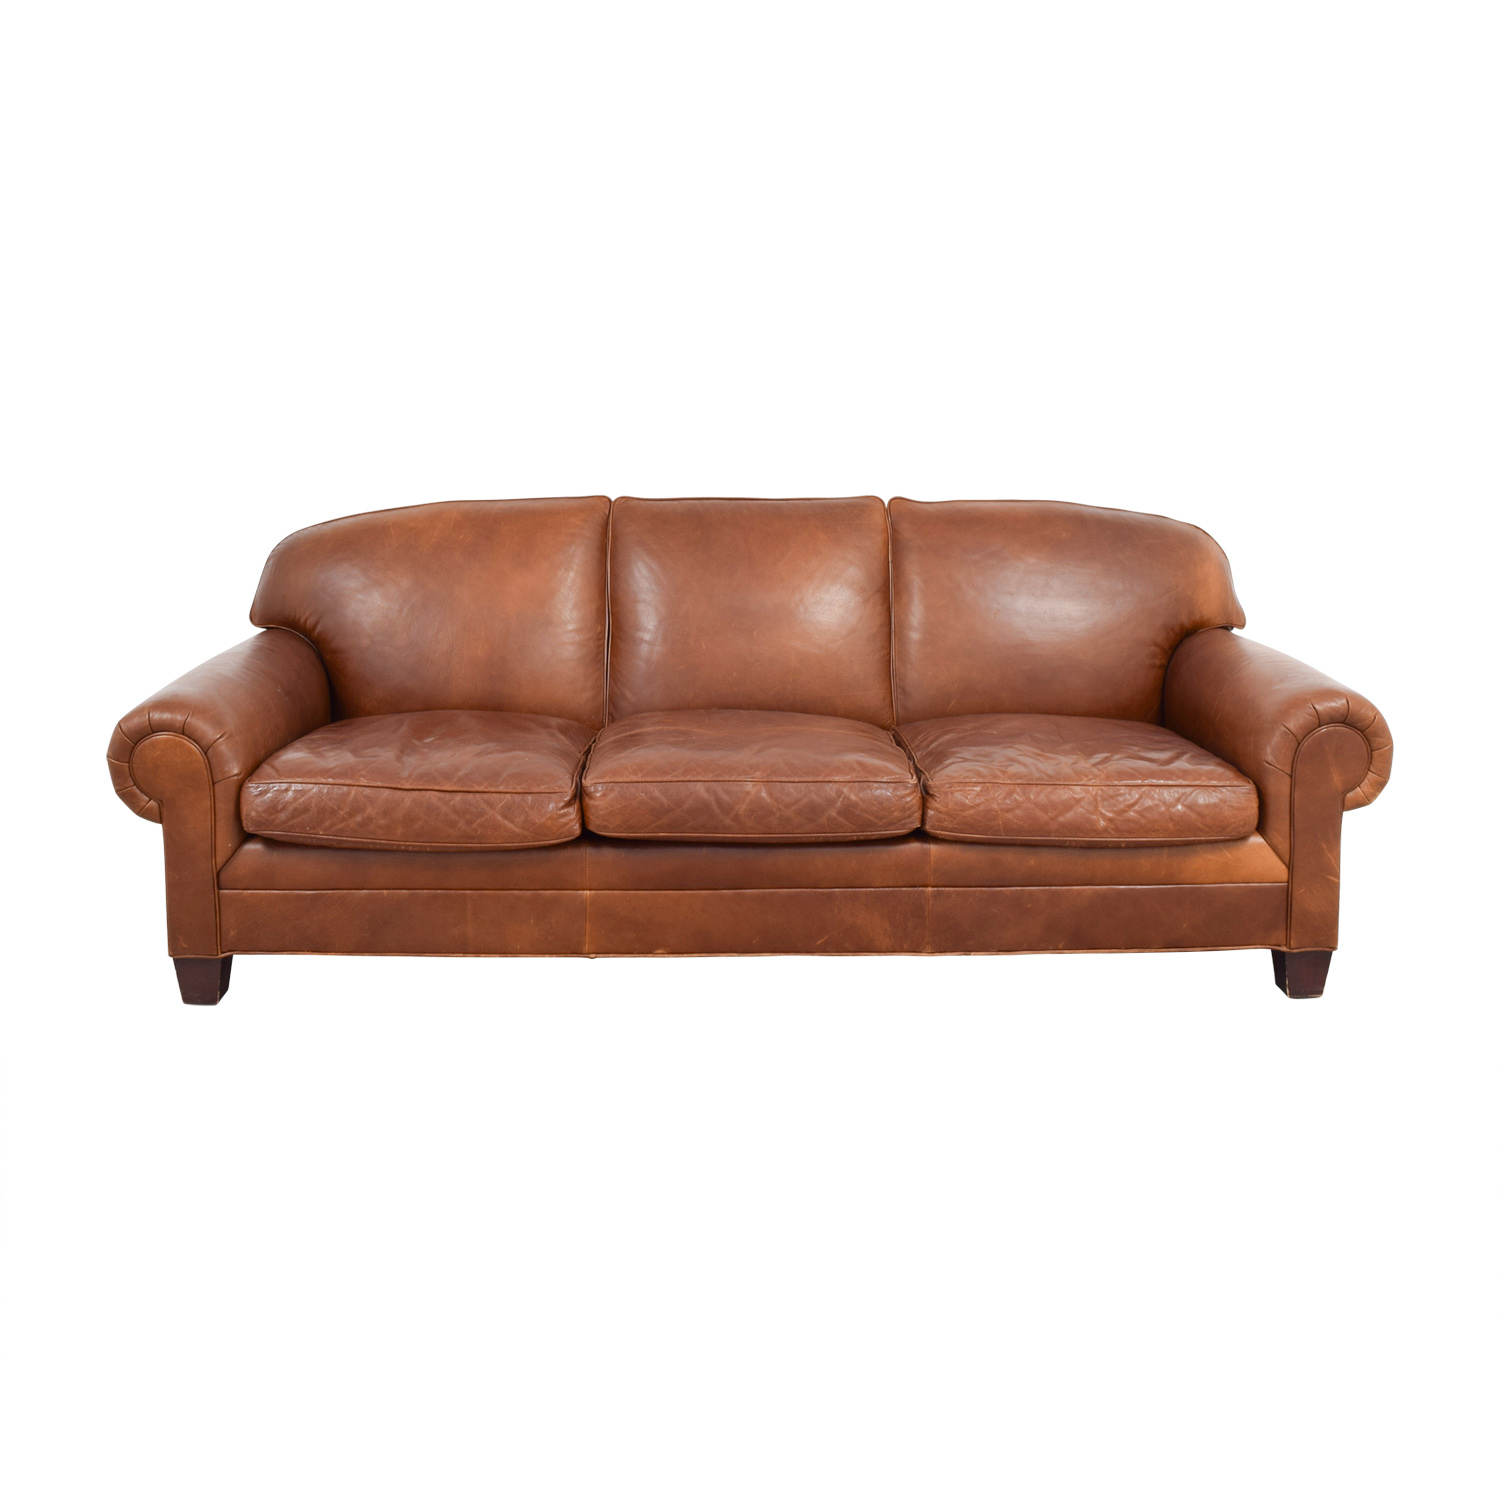 Ralph Lauren Ralph Lauren Burnt Orange Leather Sofa Second Hand ...